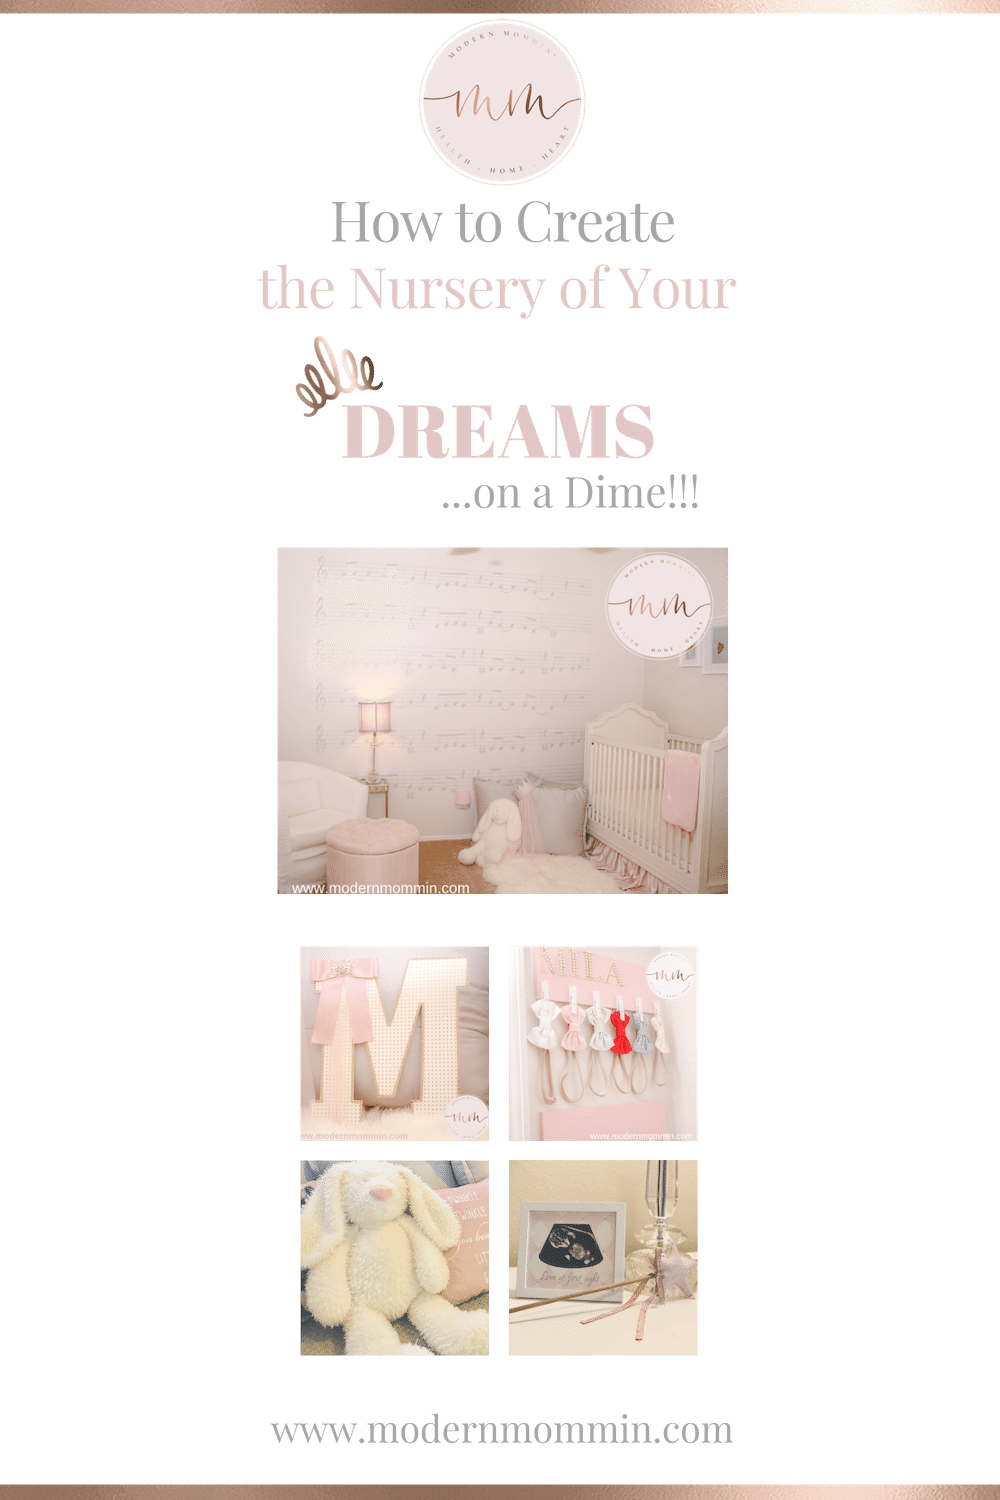 How to Create the Nursery of Your Dreams_ Modern Mommin_